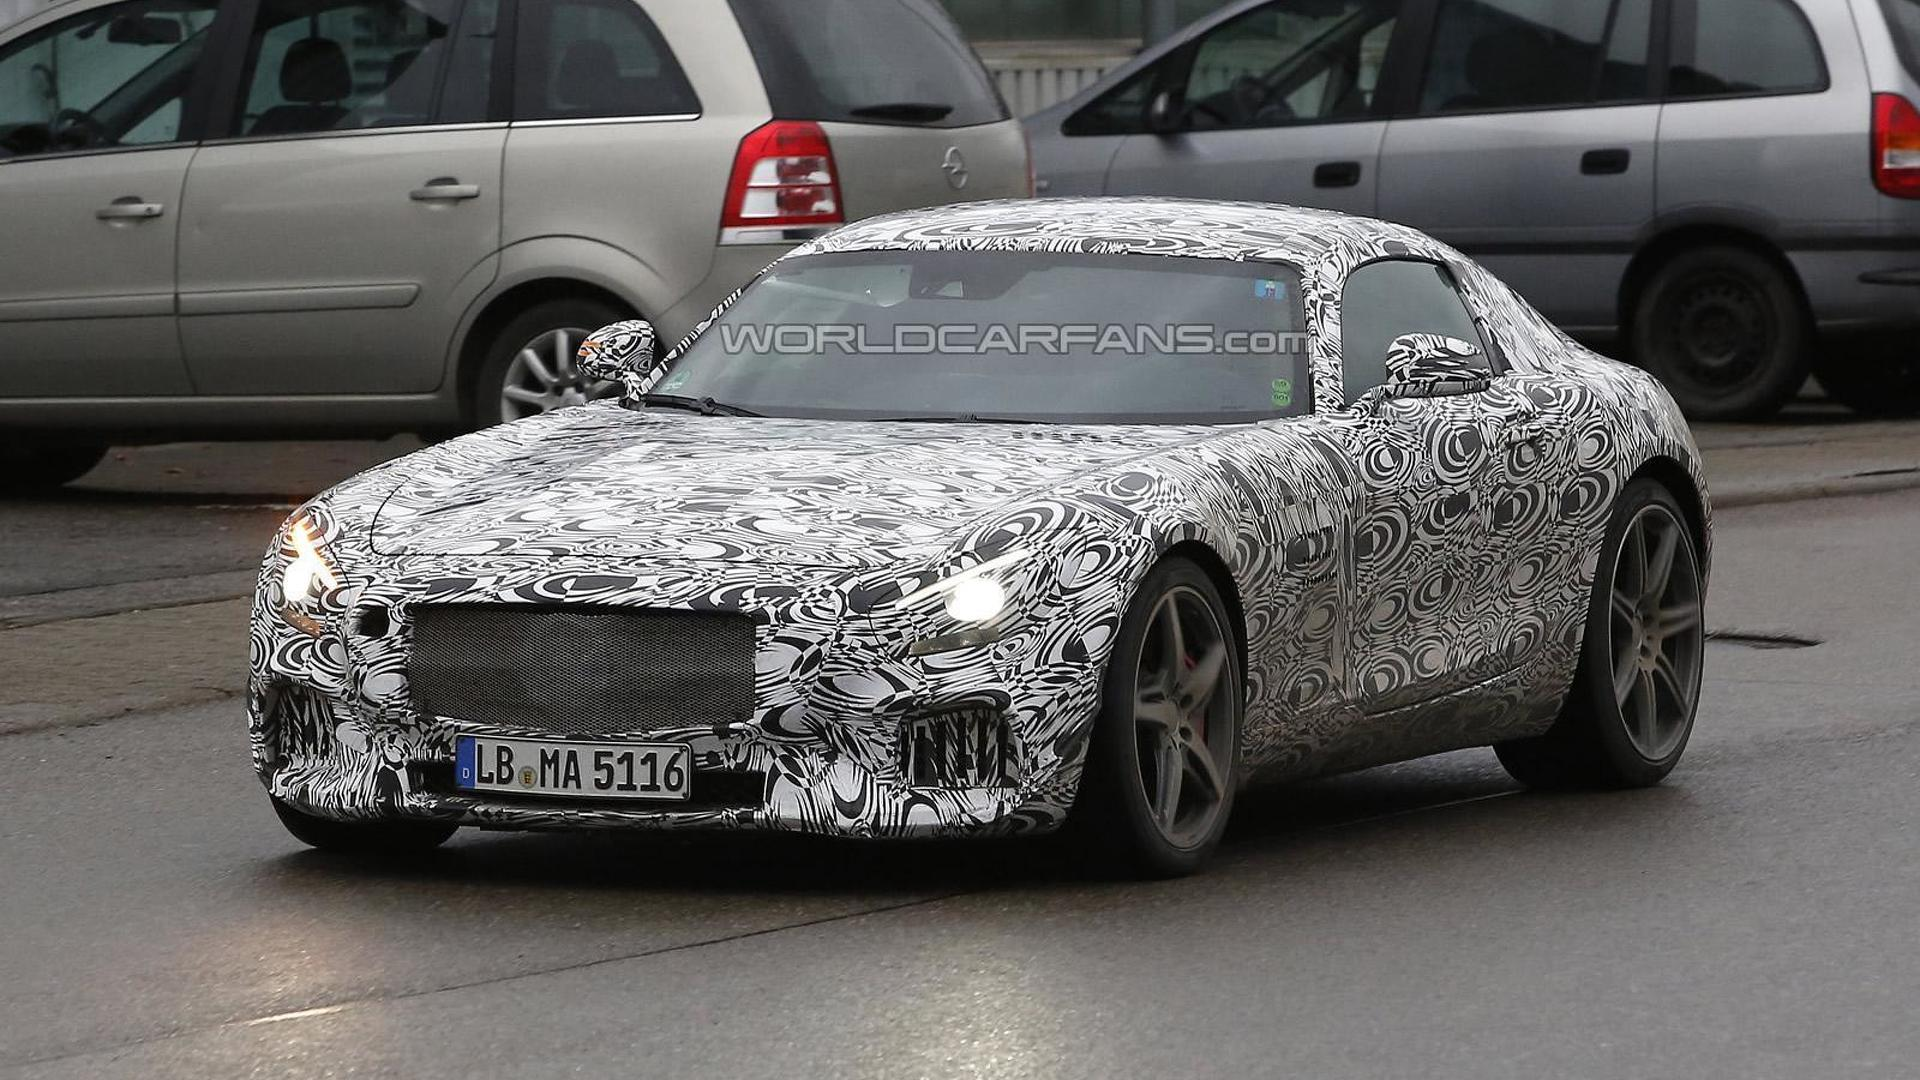 Former AMG boss says the upcoming AMG GT will be 'pure sport' - report